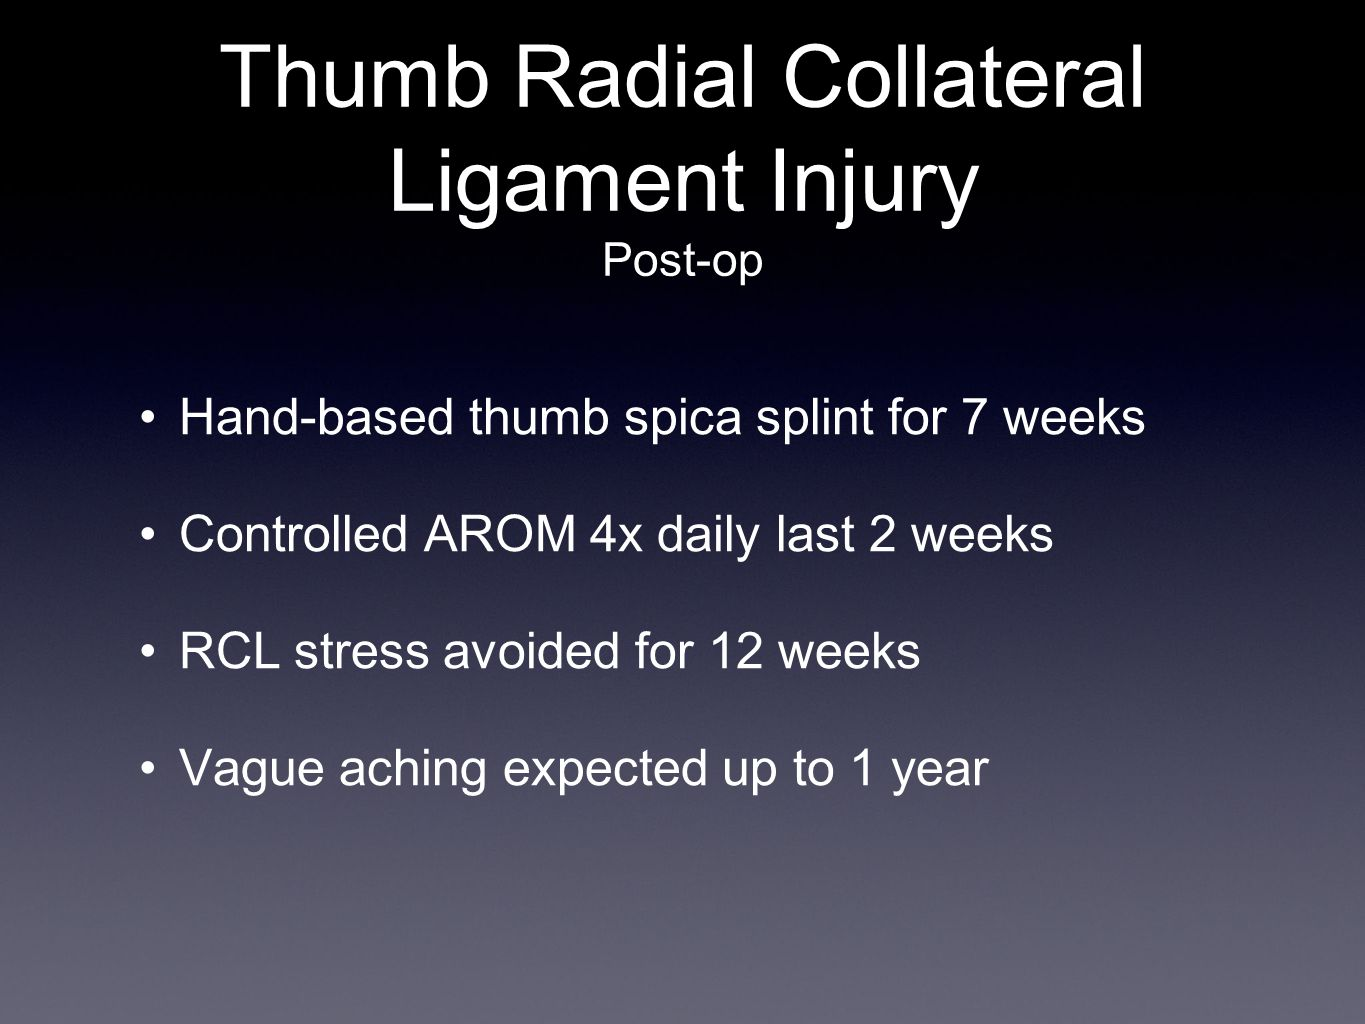 Thumb Radial Collateral Ligament Injury Post-op